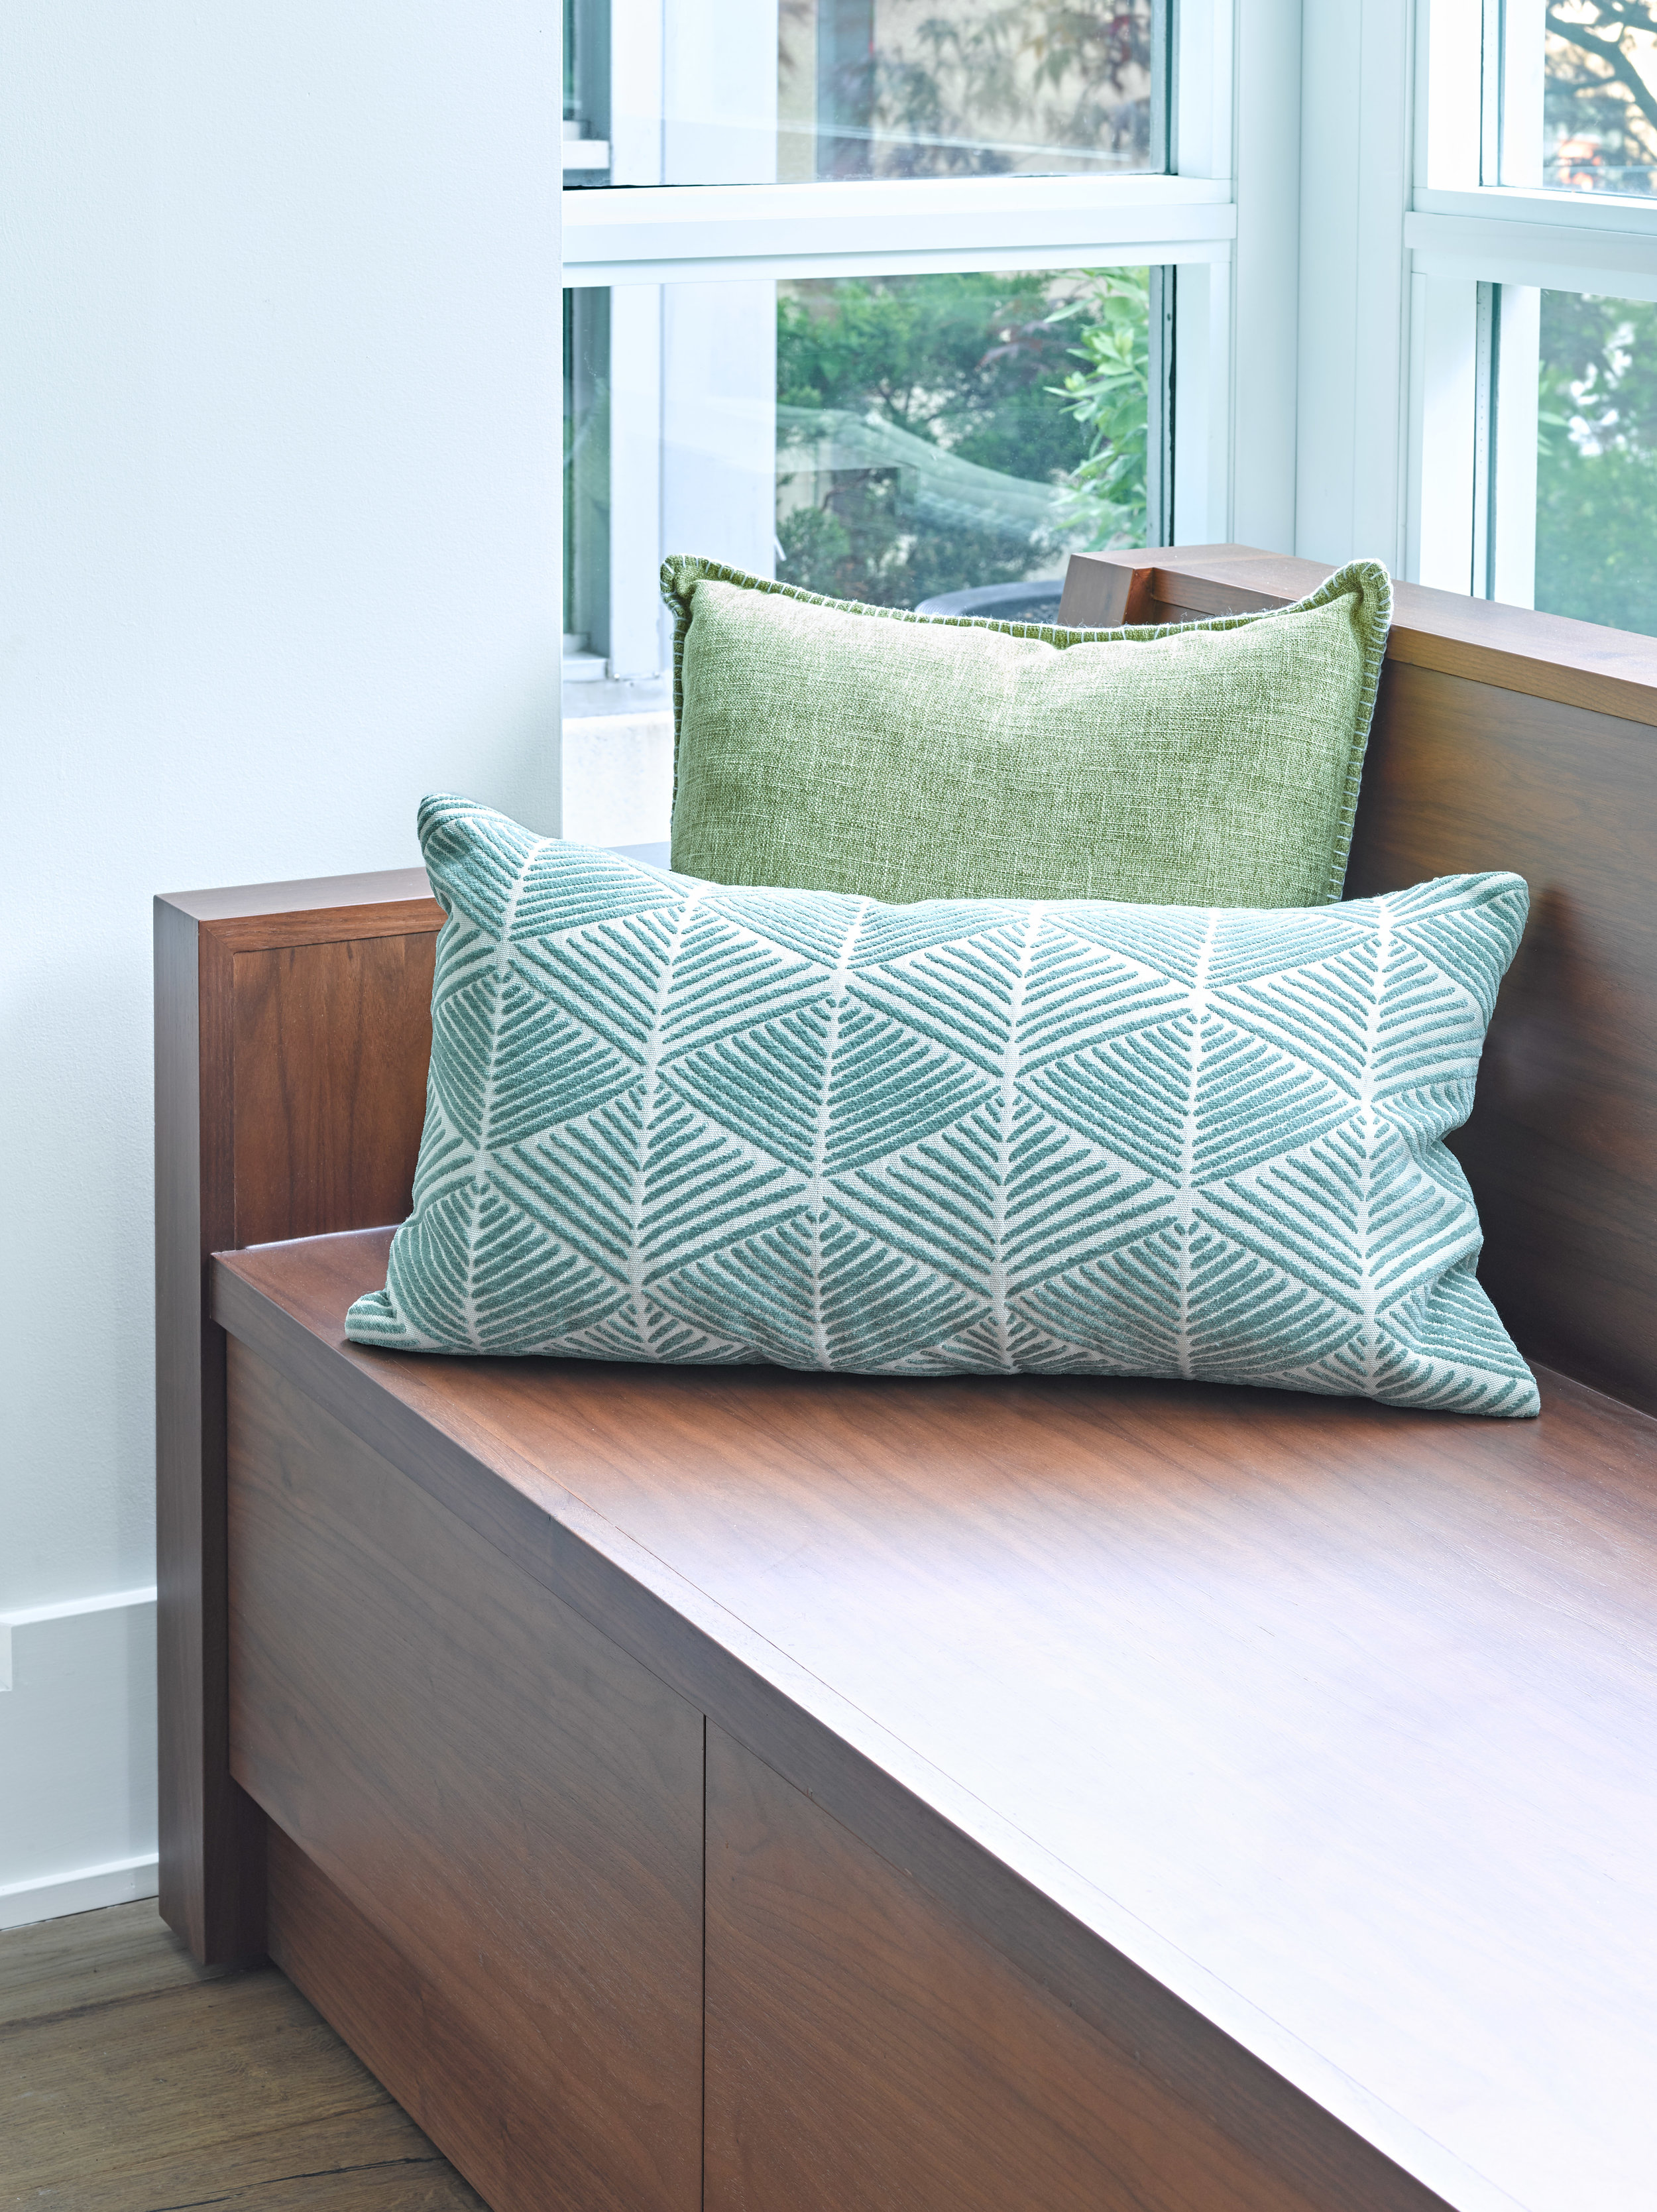 Walnut Bench with Green Pillows